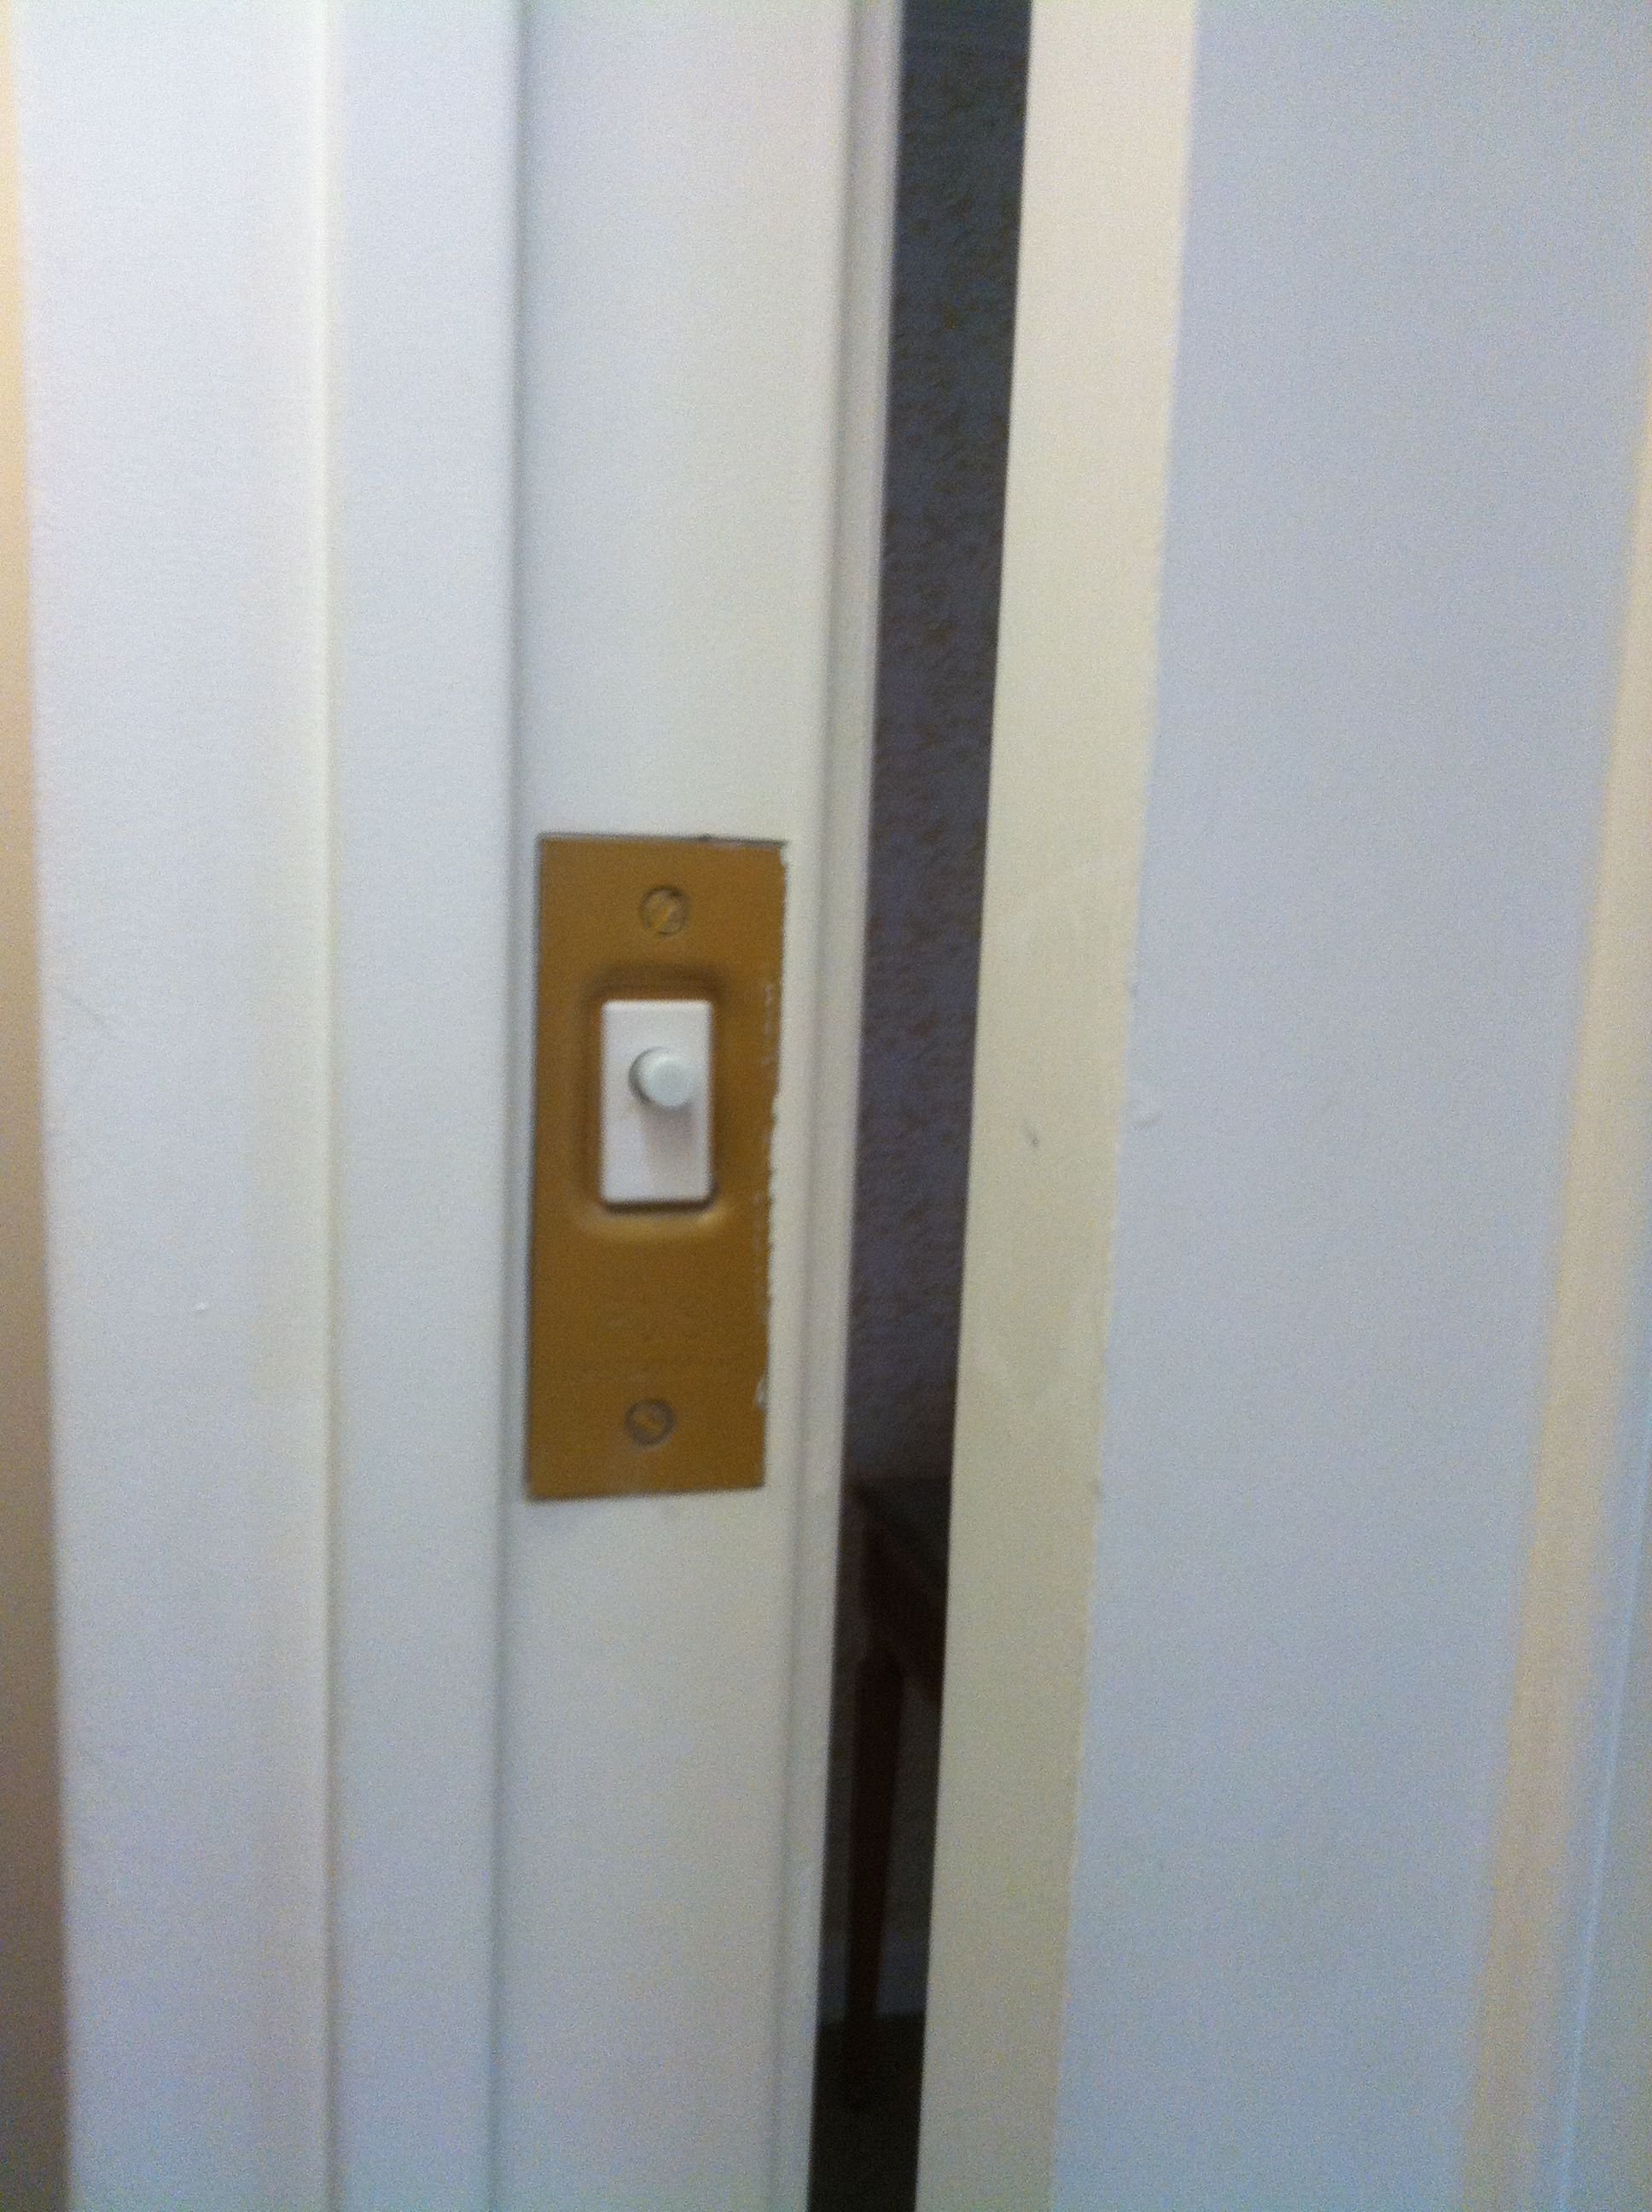 This Is A Light Switch In The Door Jam So When To